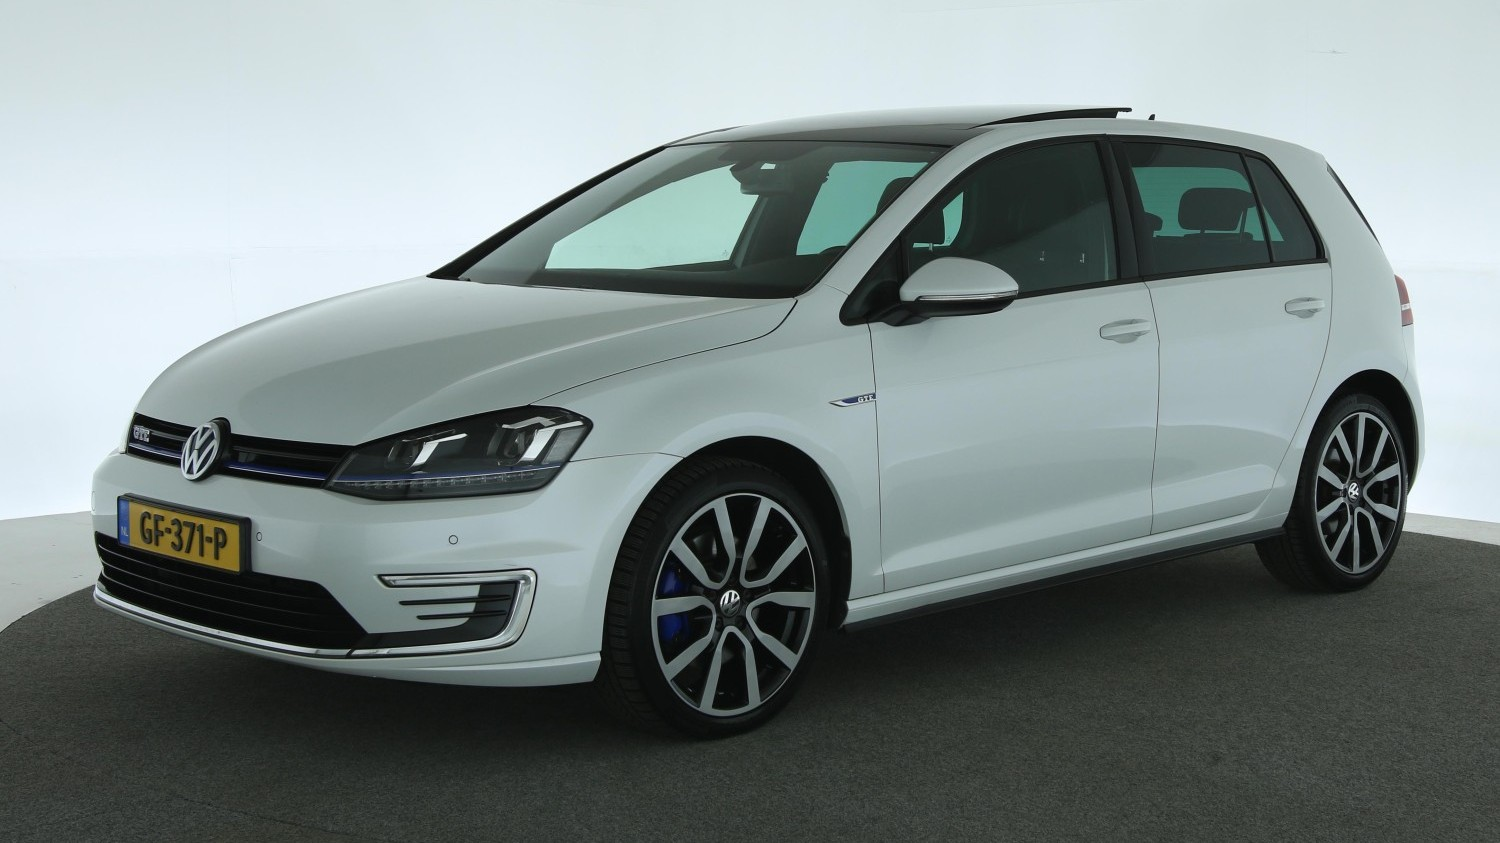 Volkswagen Golf Hatchback 2015 GF-371-P 1